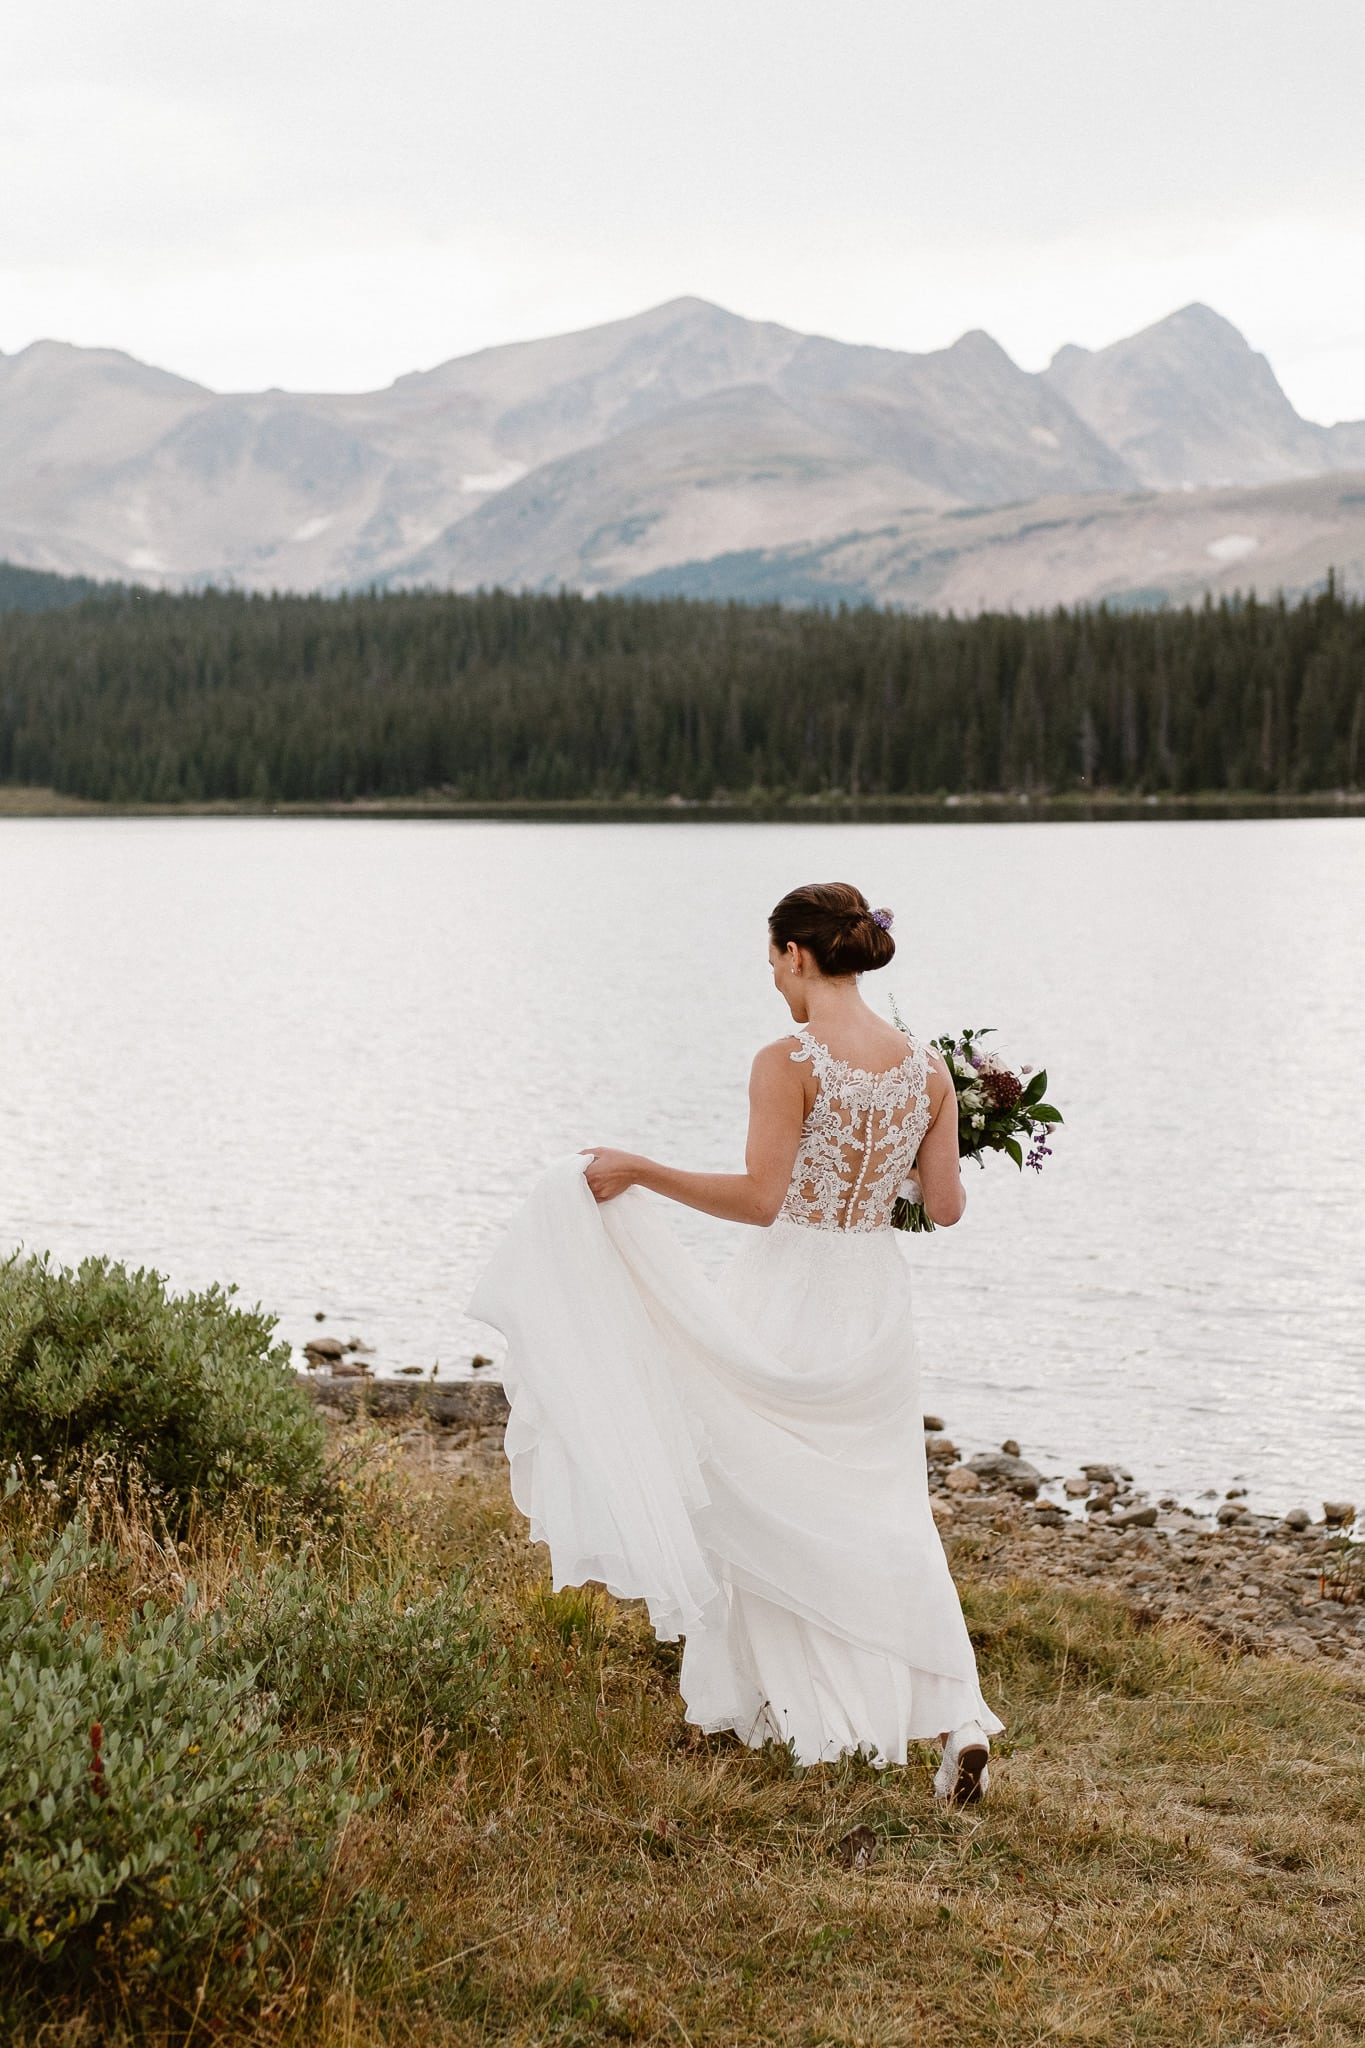 Colorado mountain elopement photographer, alpine lake adventure wedding, Boulder wedding photographer, bride walking along alpine lake, bride portrait, wedding dress with lace back